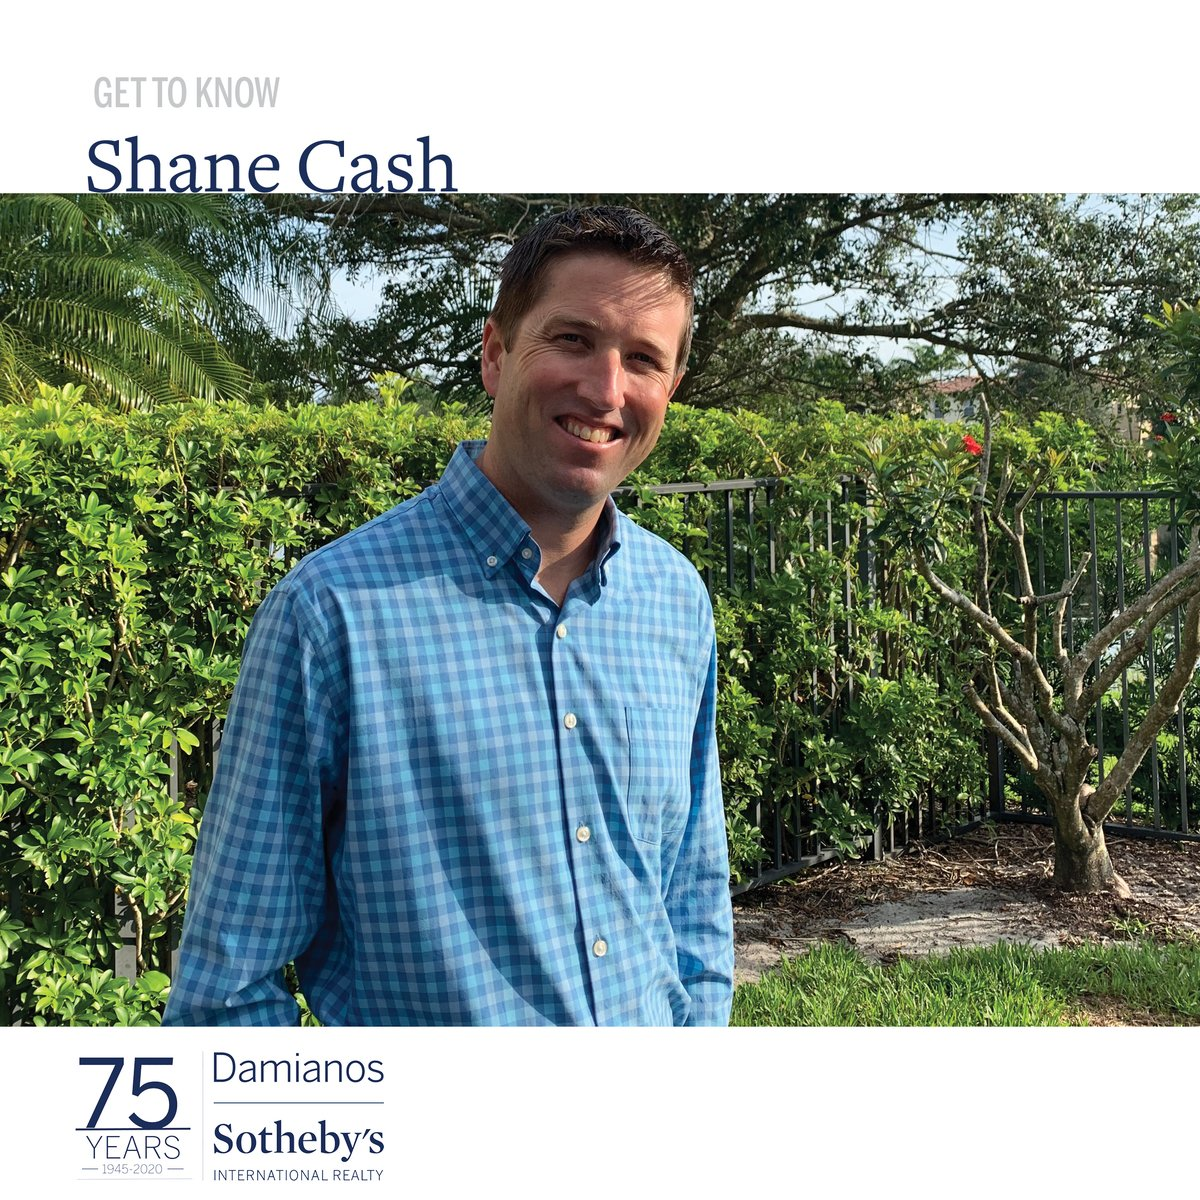 We're back with our popular Get to Know series, where we put faces with names along with some fun facts about our team members. Get to Know Shane Cash! https://bit.ly/38z4d6G  #SIRbahamas #SothebysRealty #LuxuryRealEstate #SothebysRealty #Bahamas #Abaco #BahamasRealEstatepic.twitter.com/EdiDvKX5Jd